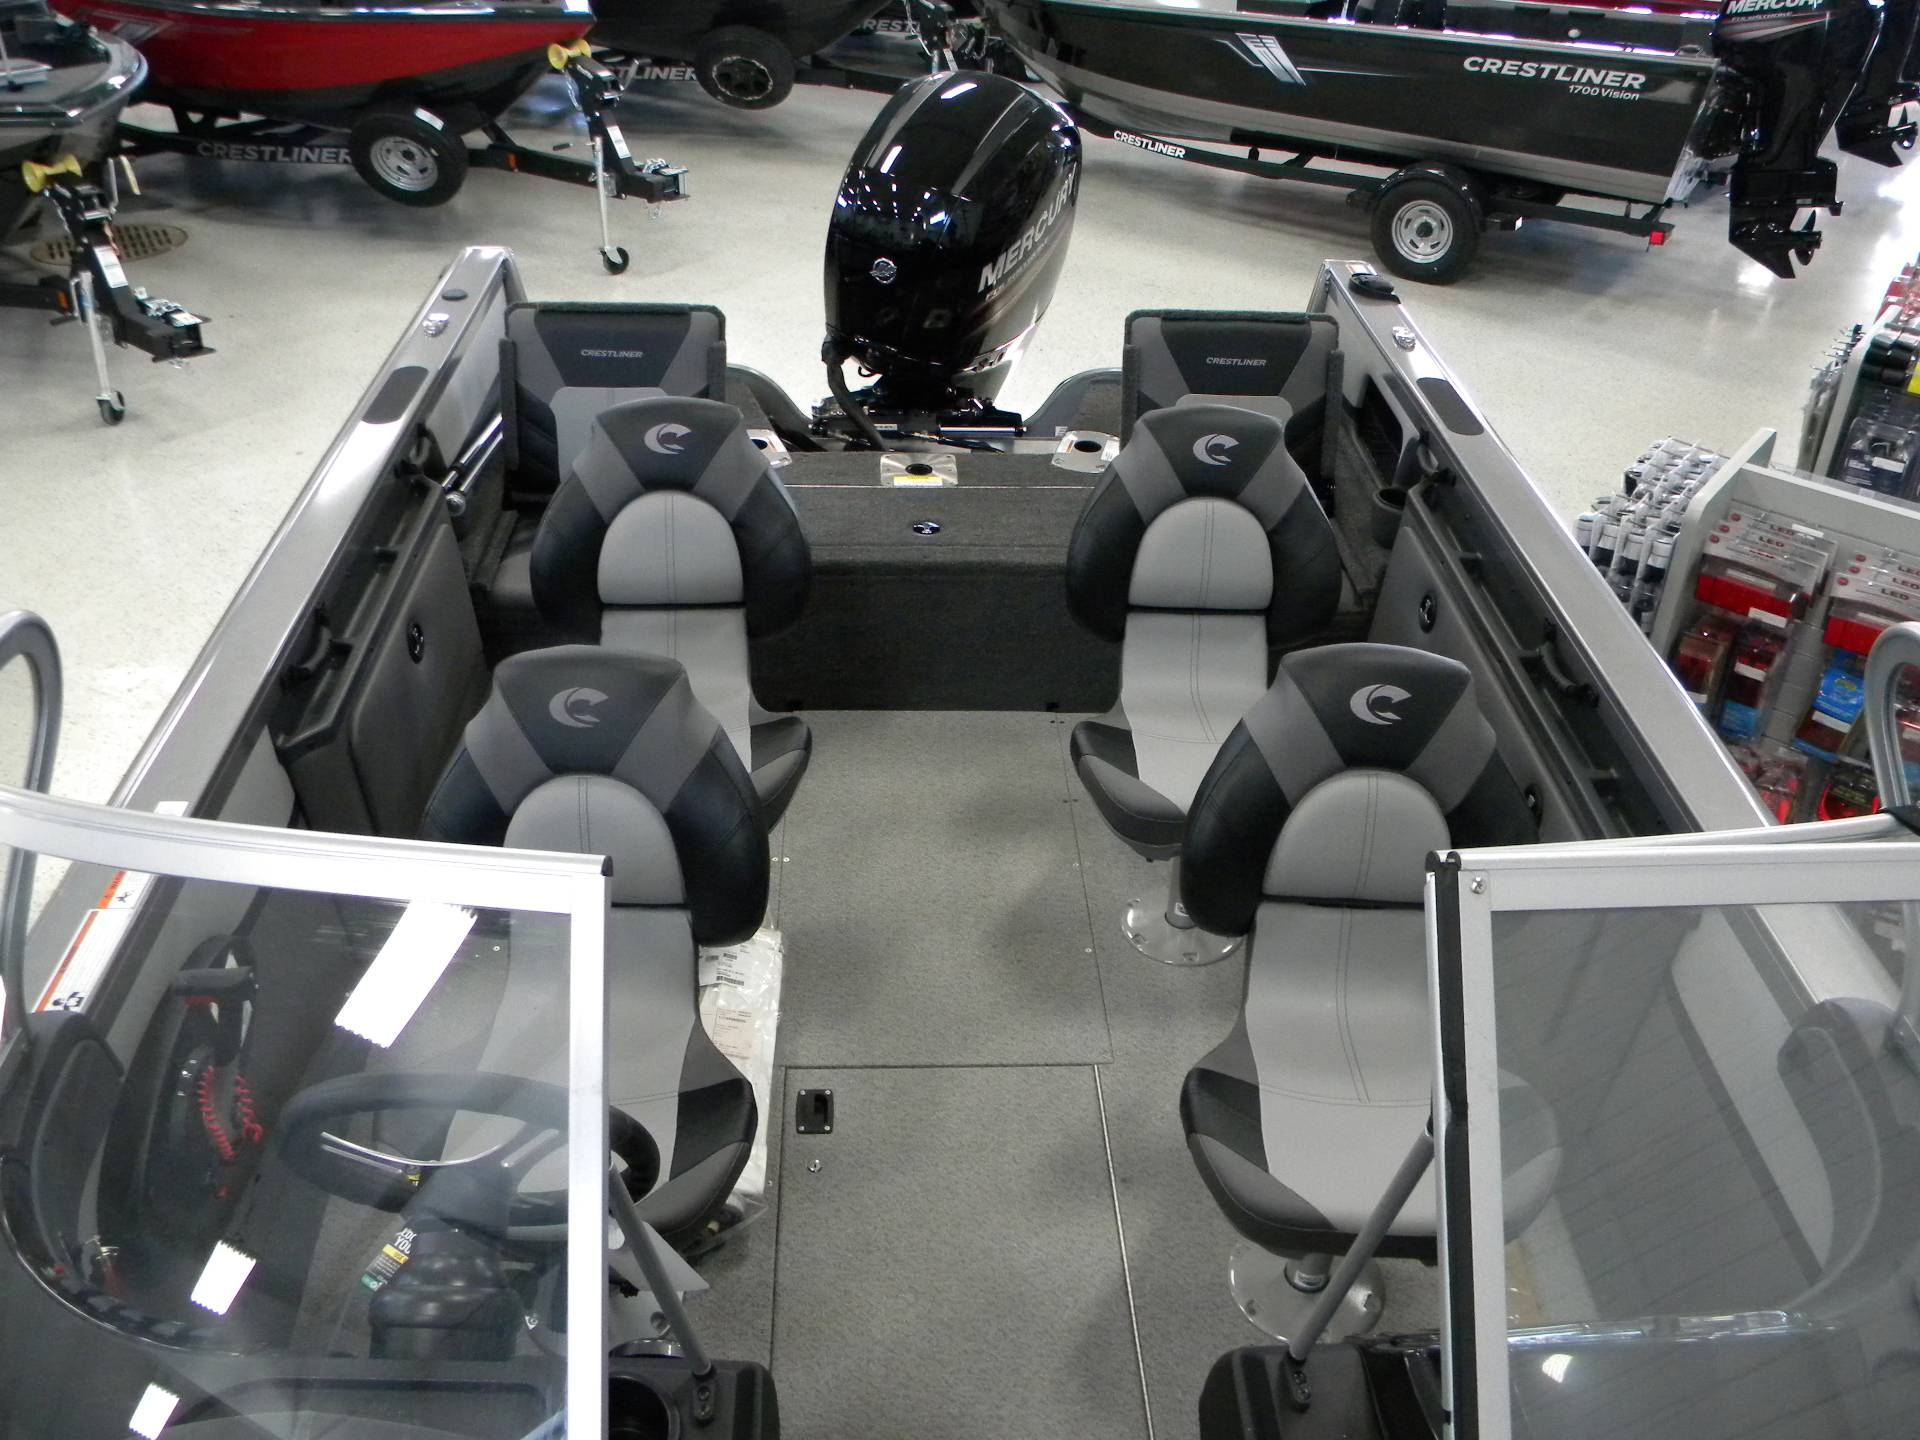 2019 Crestliner 1850 Sportfish Outboard in Kaukauna, Wisconsin - Photo 6